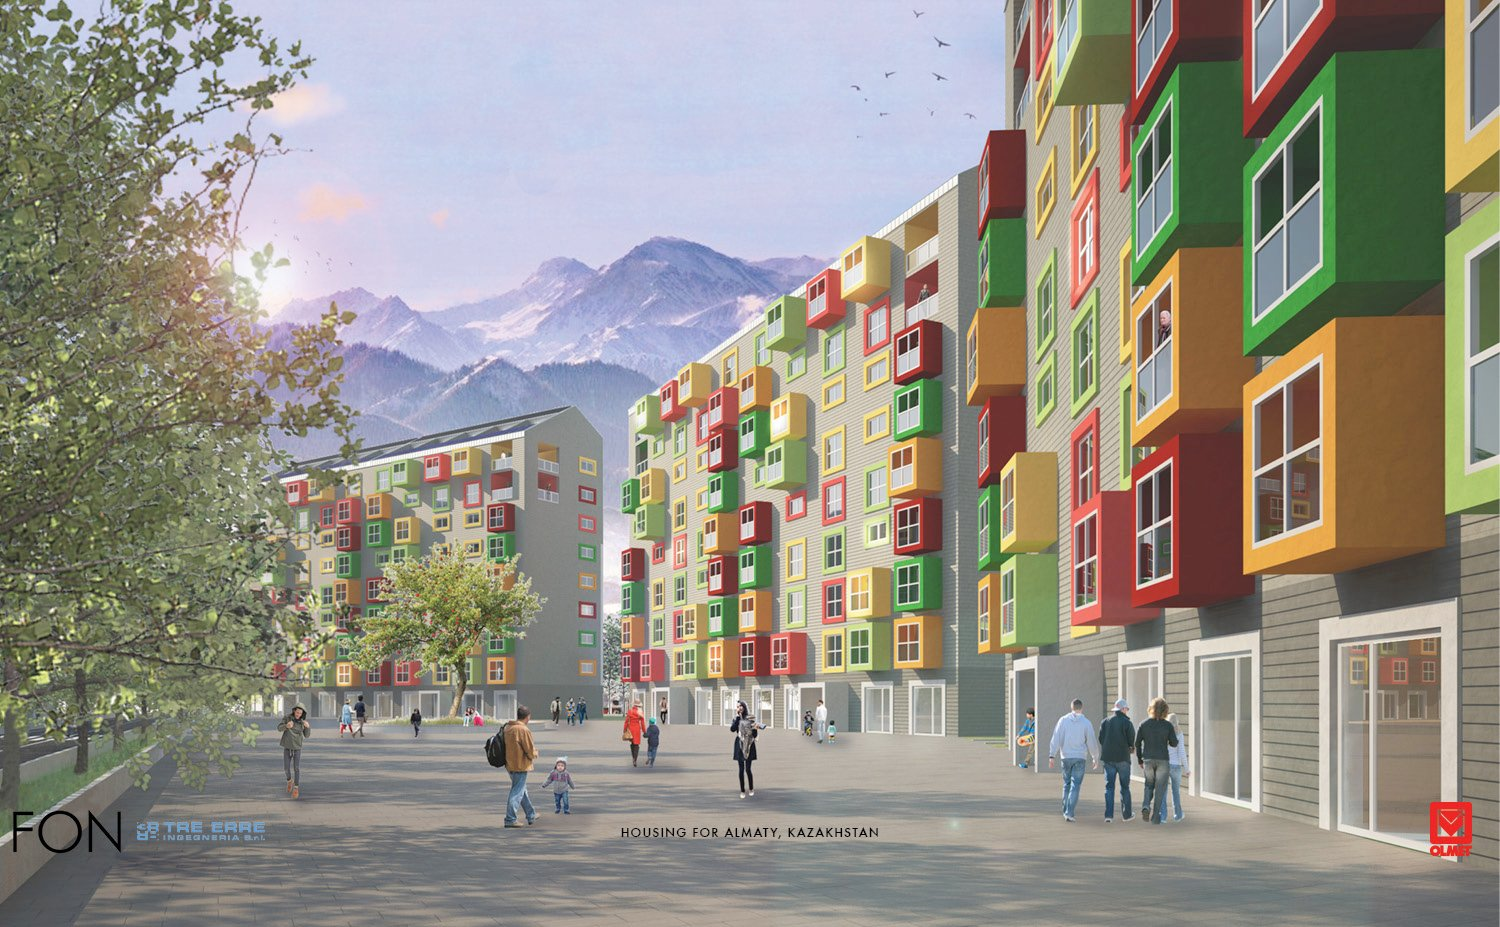 HOUSING FOR ALMATY-FON-01